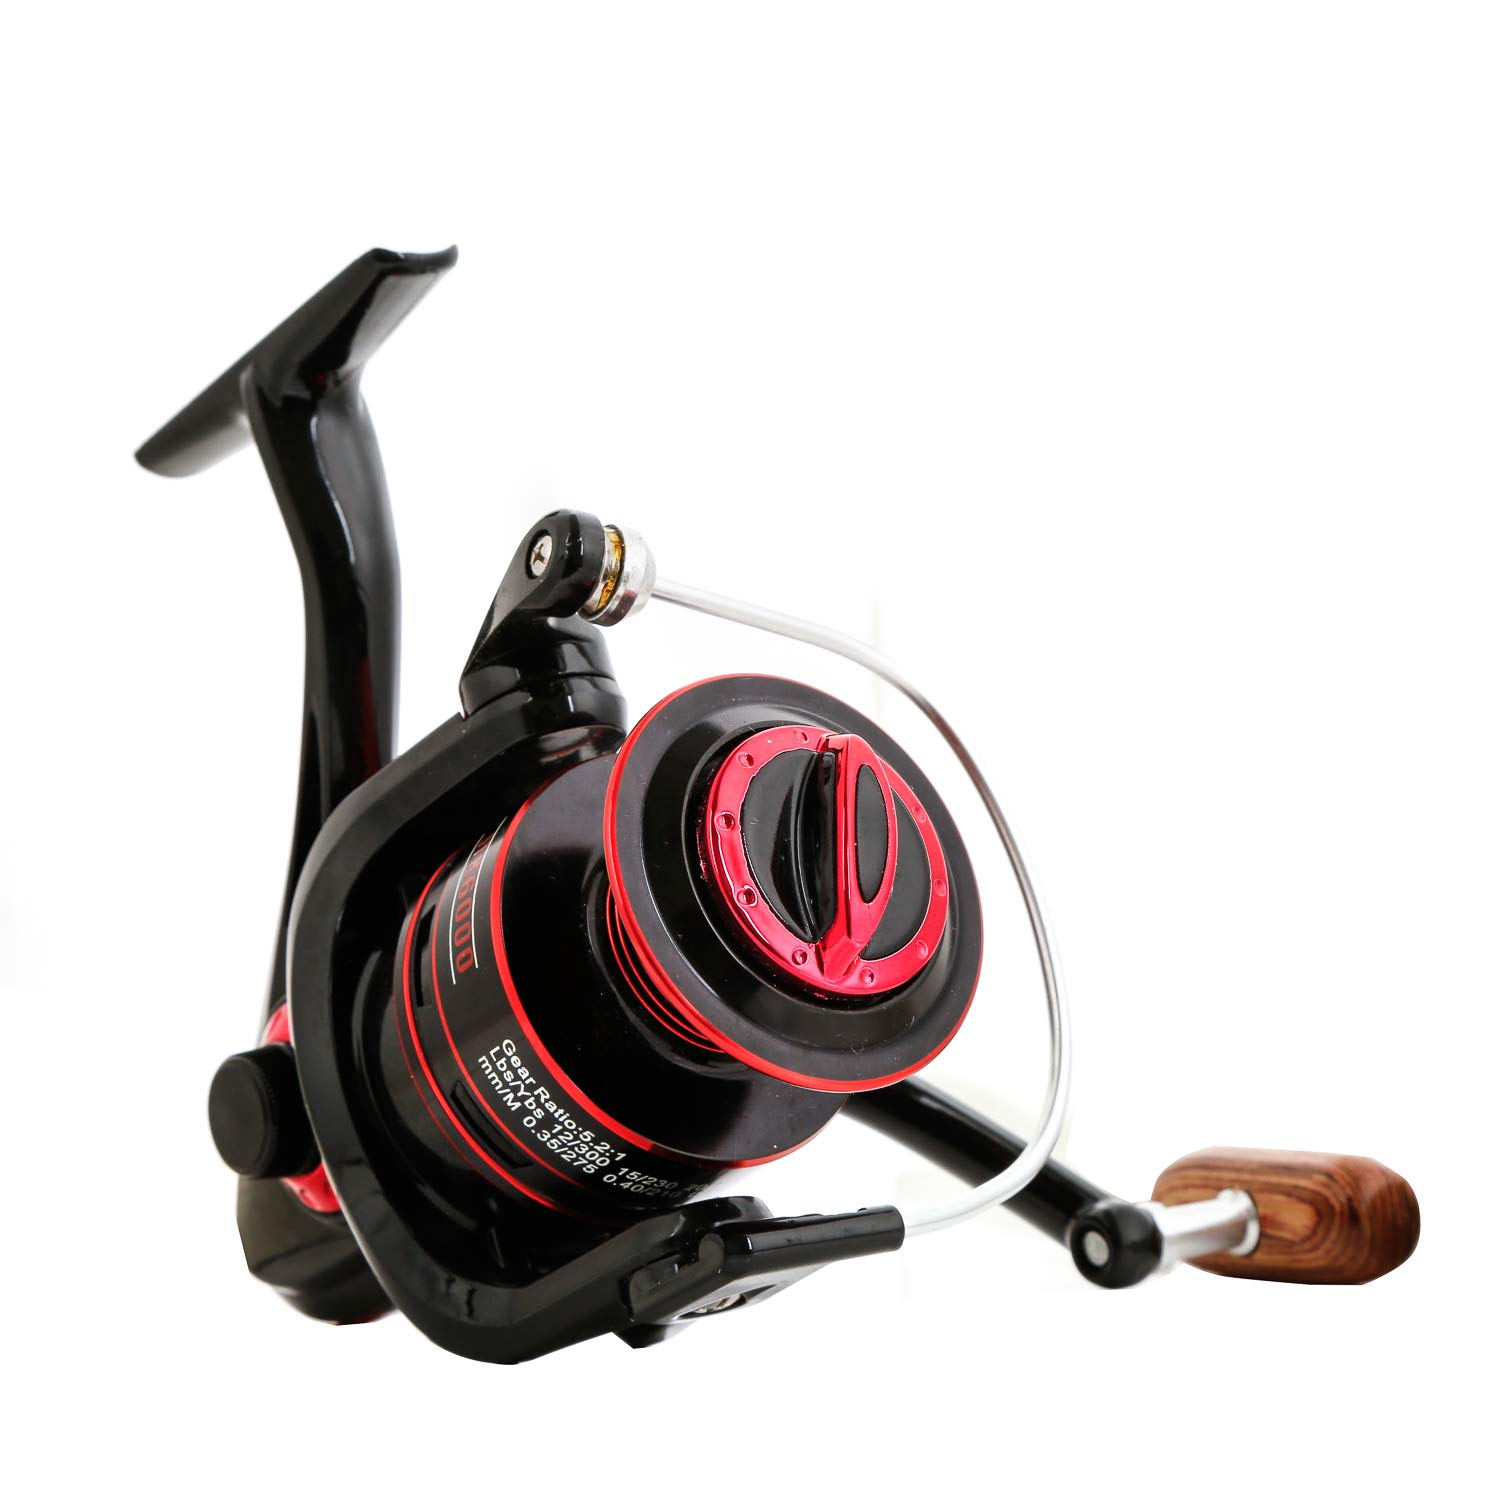 LurEra All-Purpose Spinning Reel 5.2 1 Gear Ratio 12 1 Corrosion Resistant Bearings Ultra Smooth Saltwater Rated Spin Fishing Reel Available in Sizes 4000, 6000